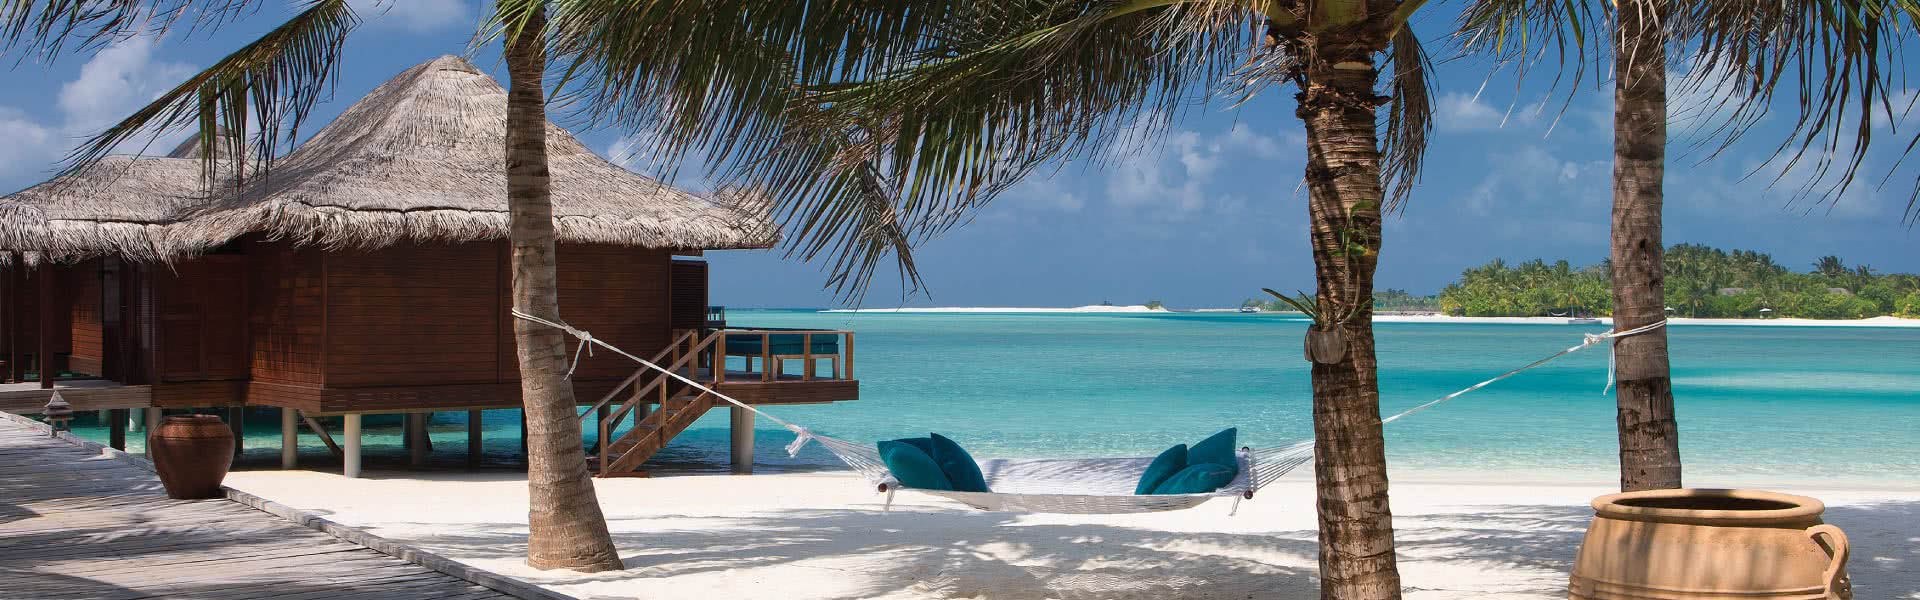 Maldives Water Bungalow | Special Offers at Anantara Veli